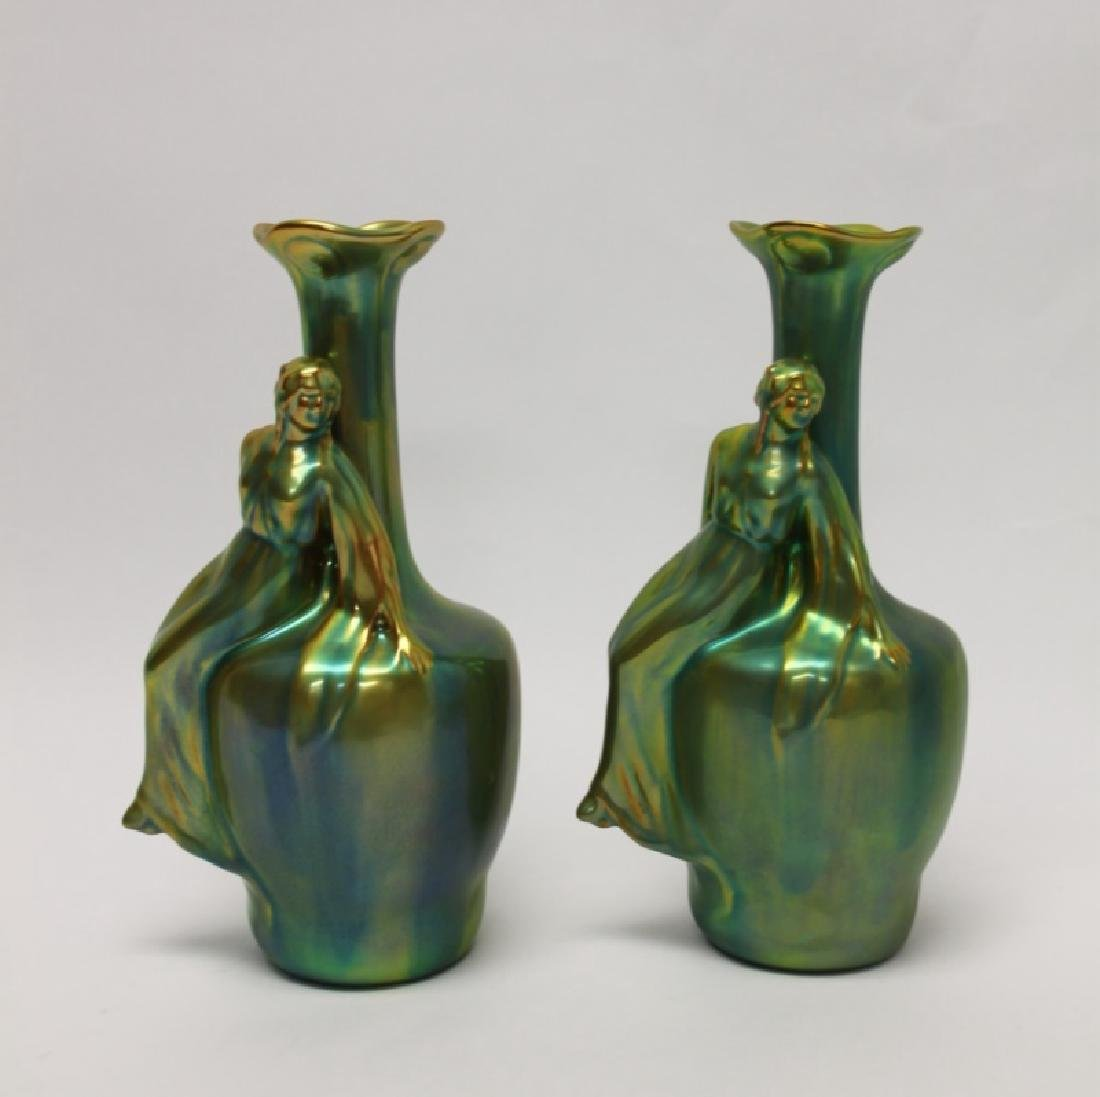 Pair of Zsolnay Iredescent Pottery Vases w/ Female